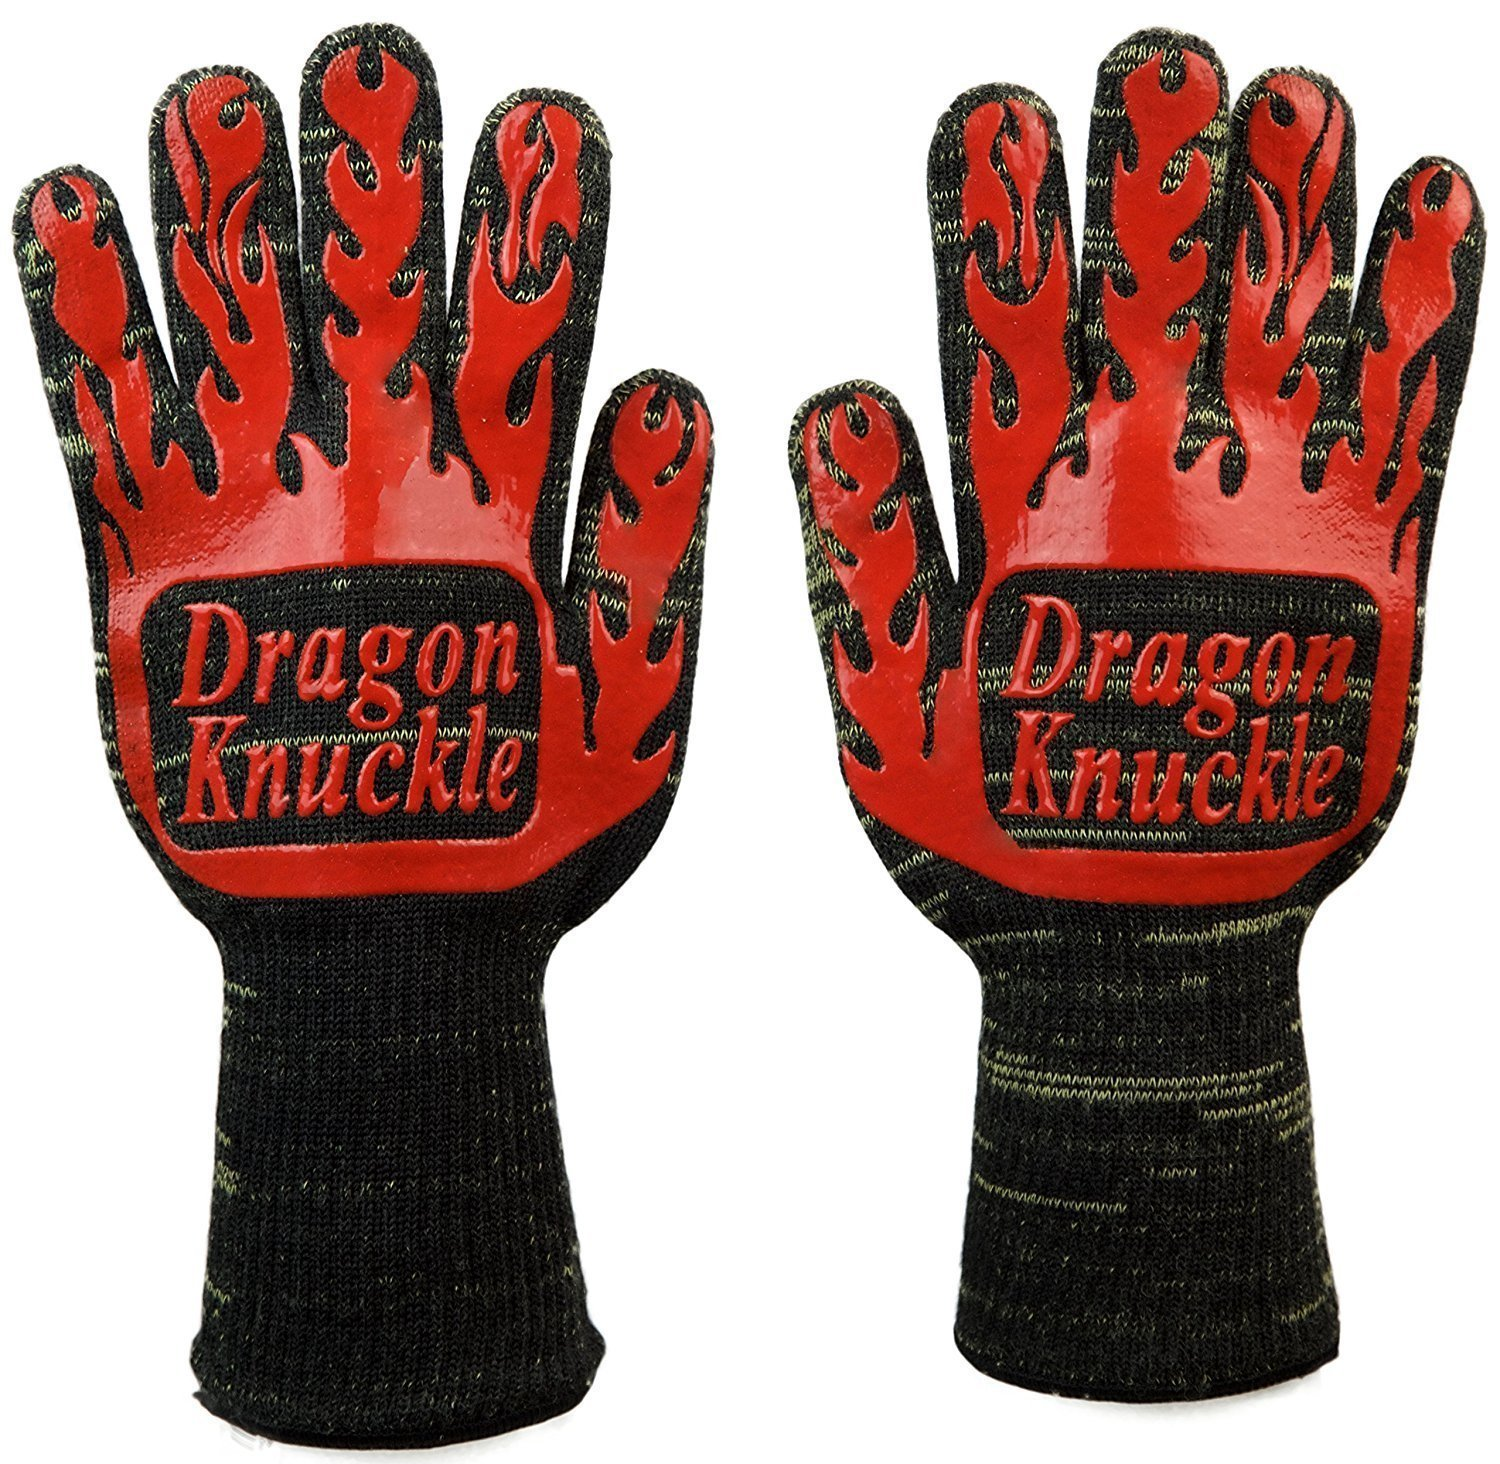 Dragon Knuckle Heat Resistant BBQ Gloves